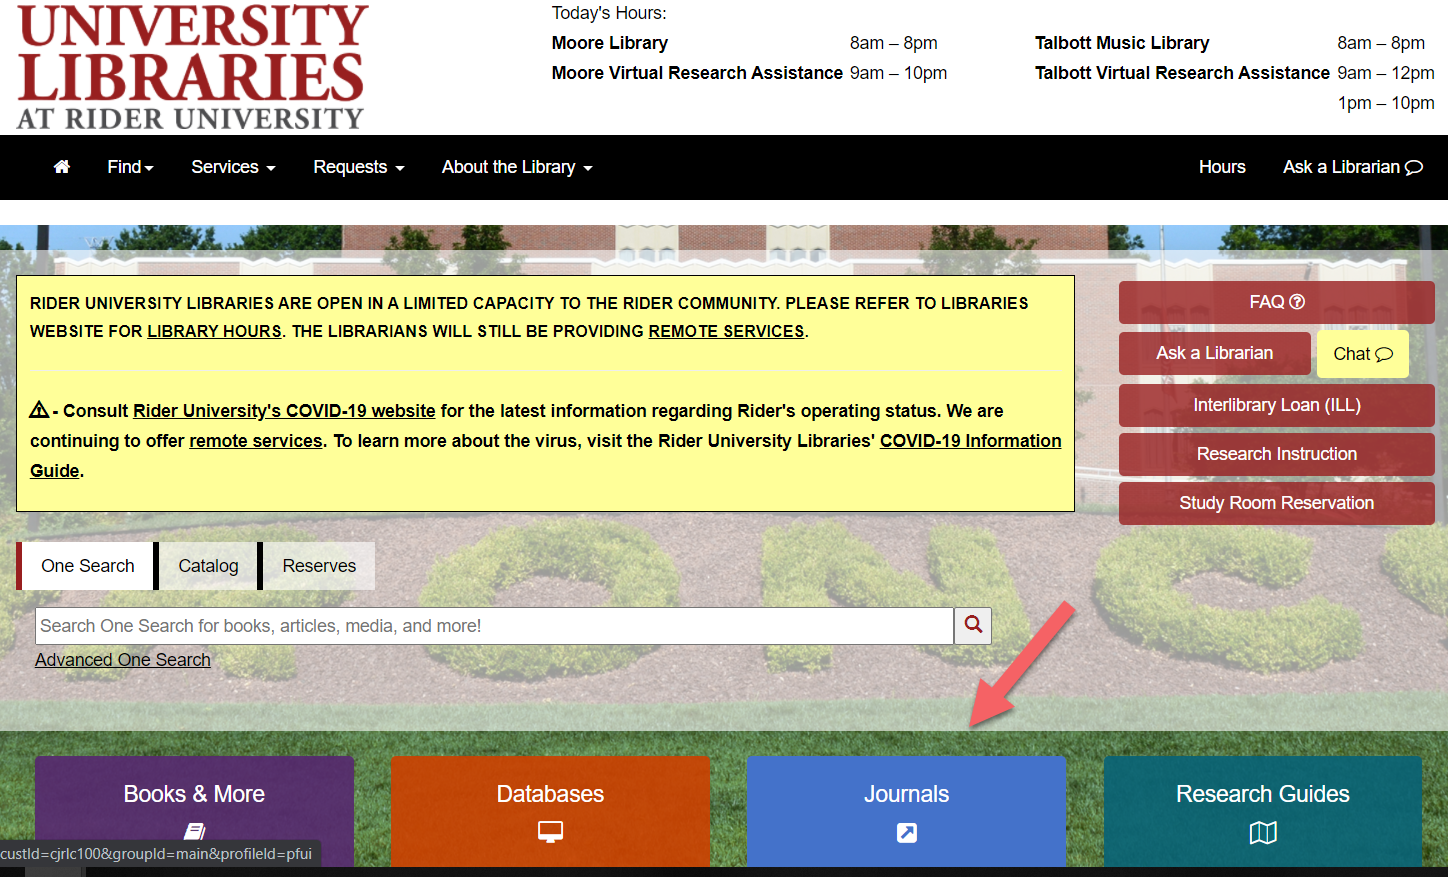 screenshot library website with an arrow pointing to the journals button.